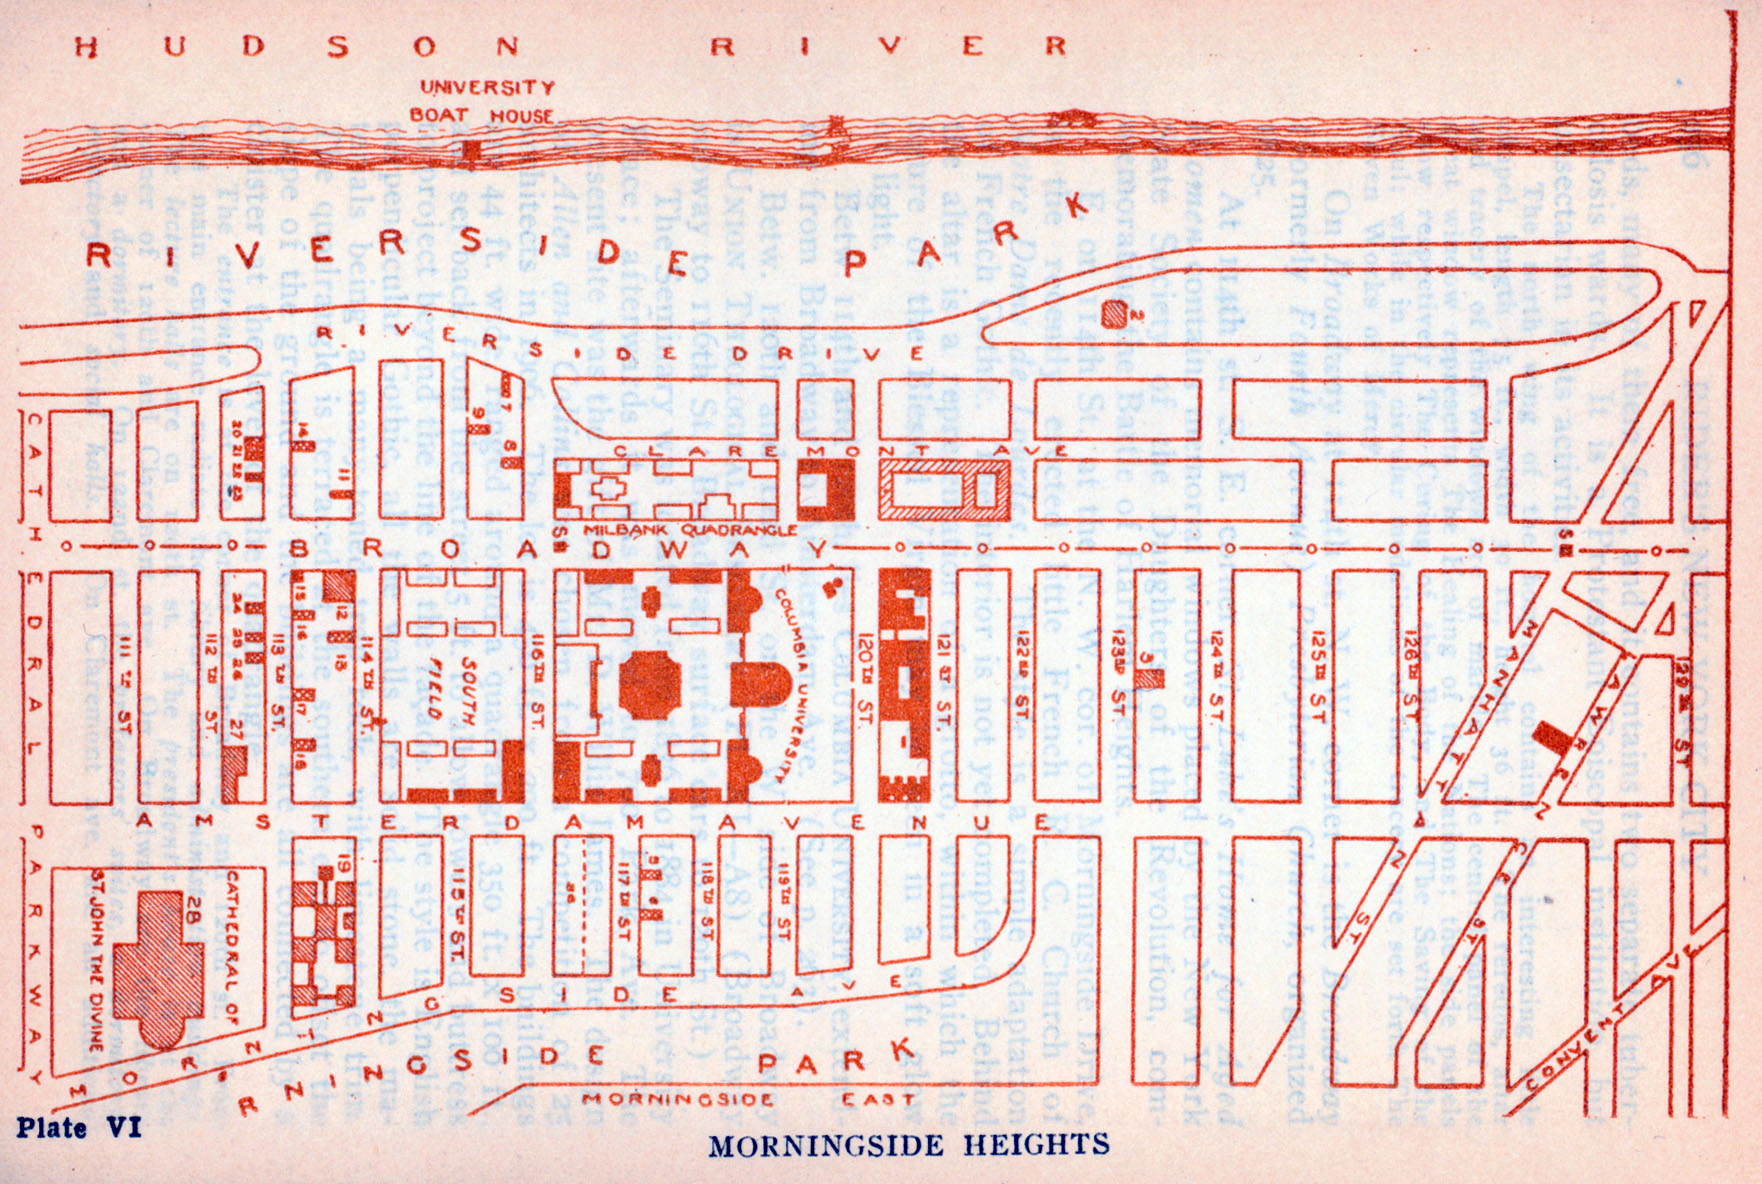 Morningside Heights Map, New York City, New York, United States 1916